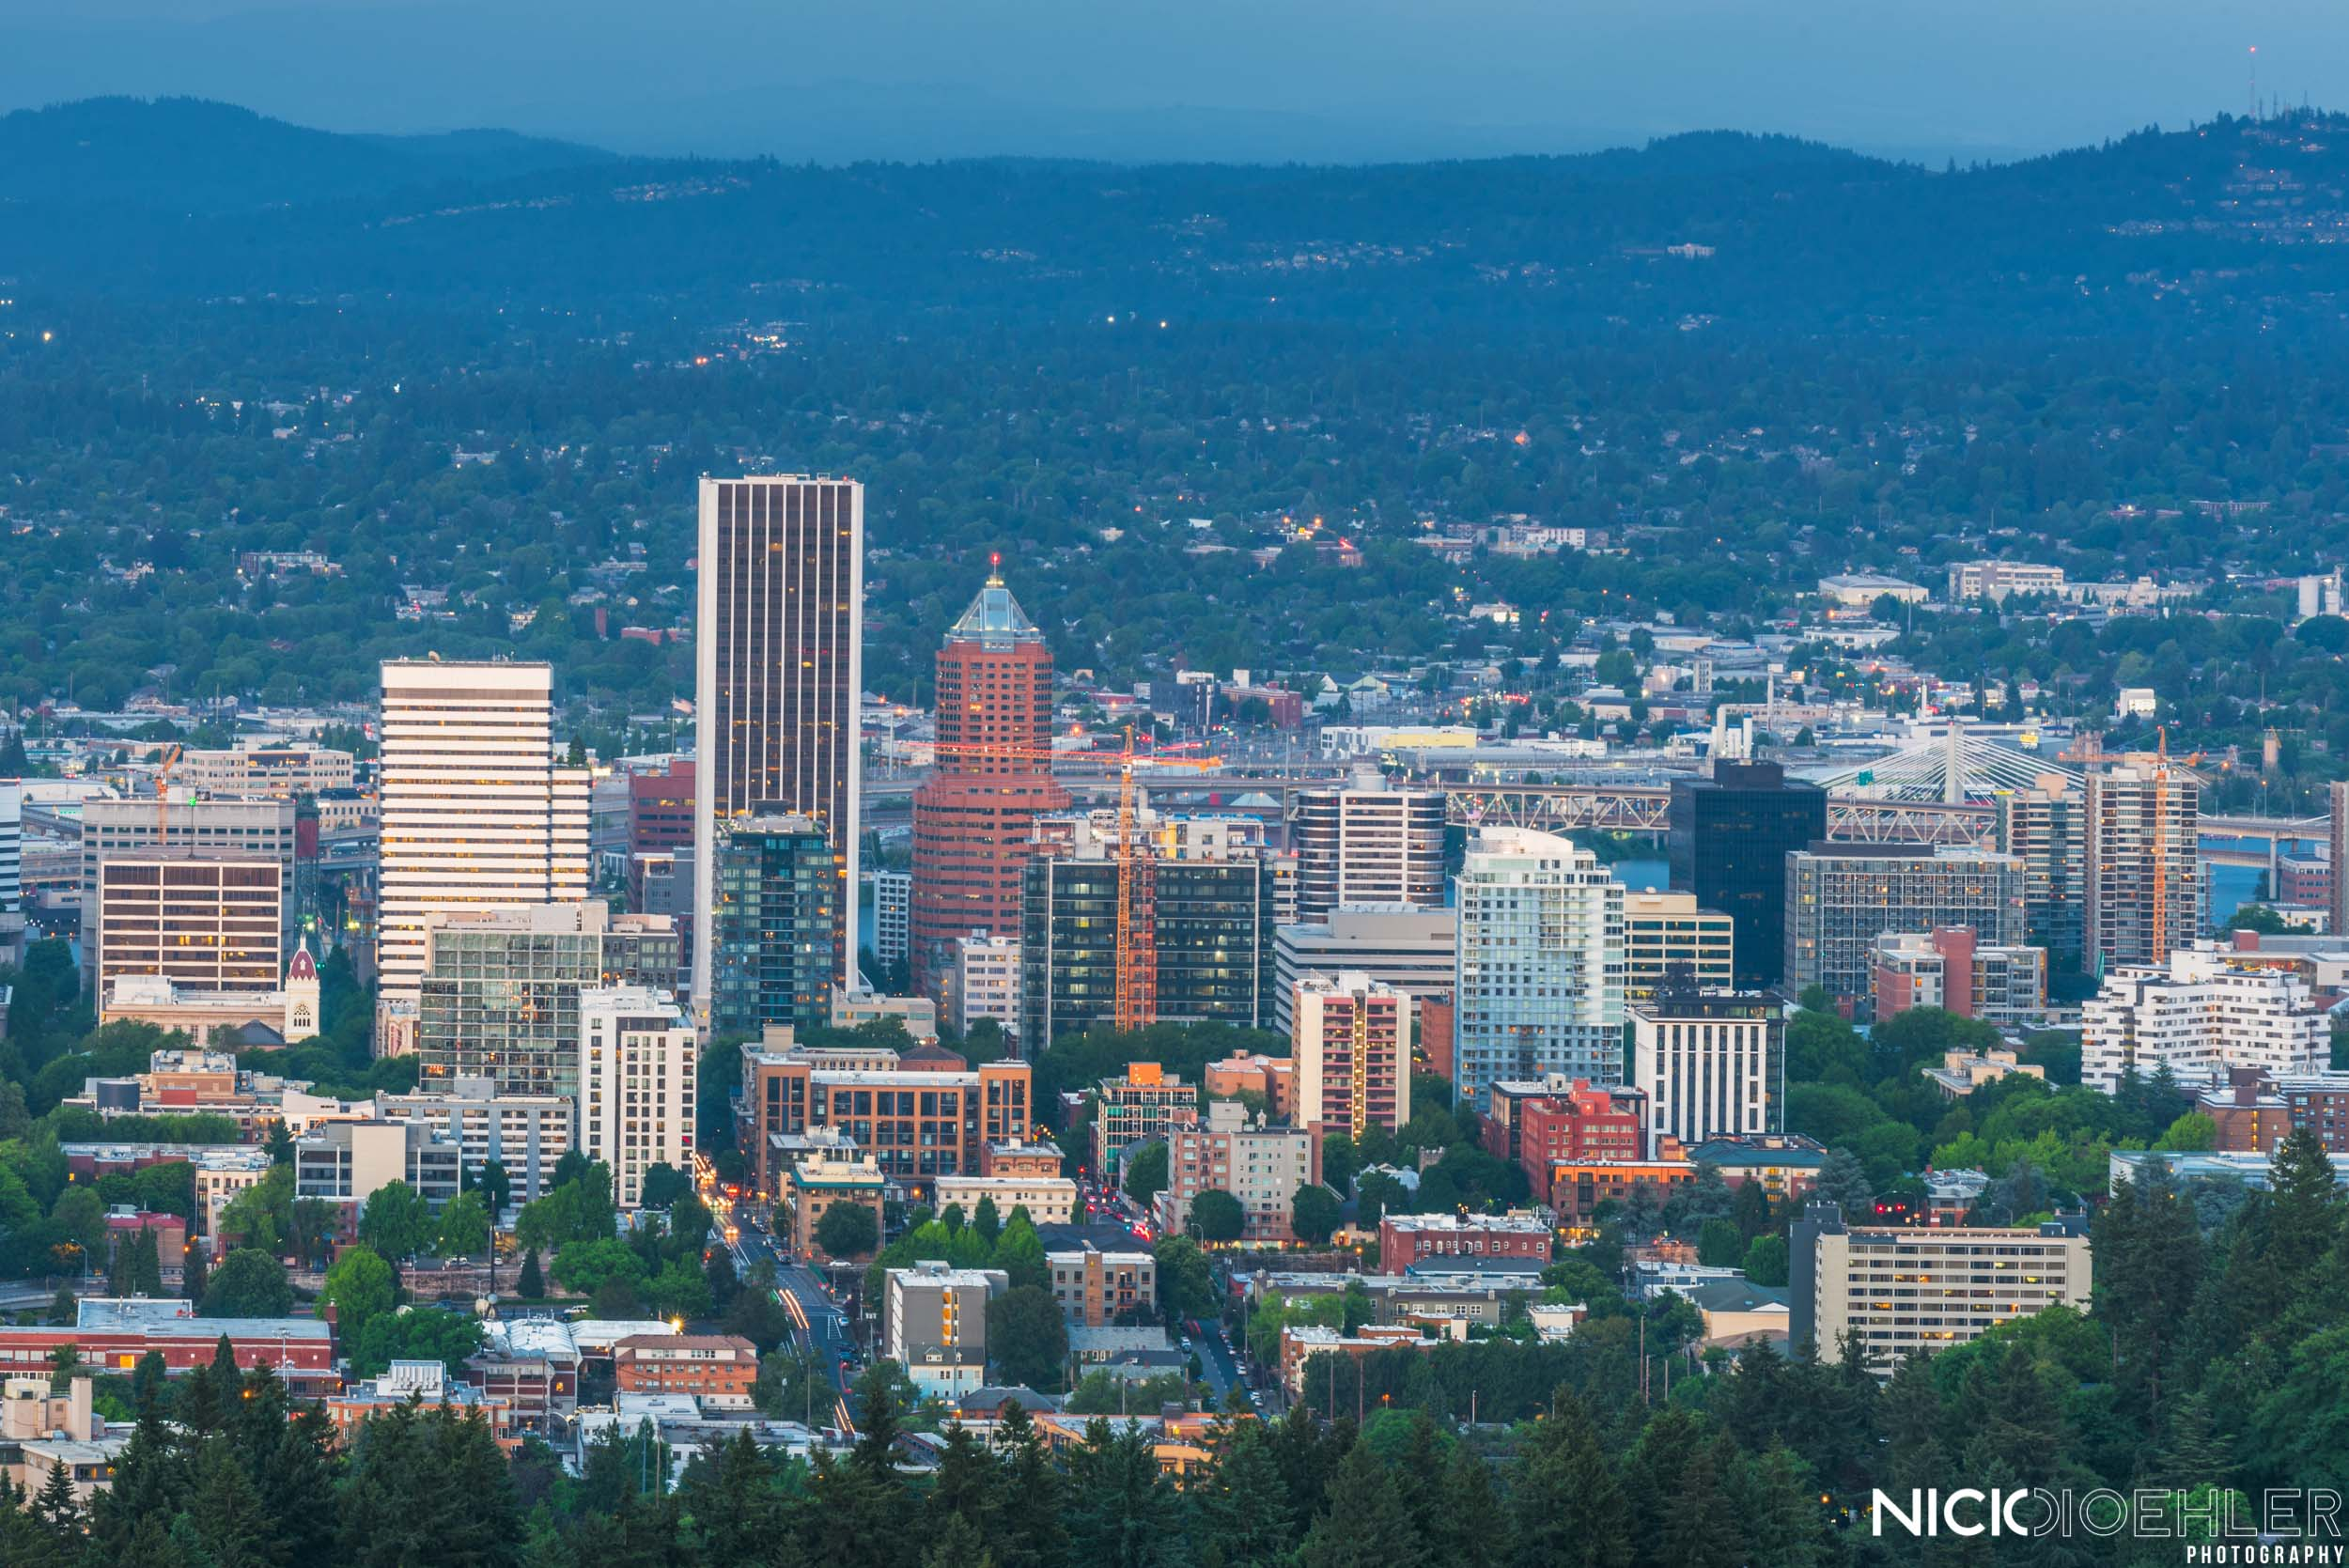 Portland, Oregon: The city skyline.